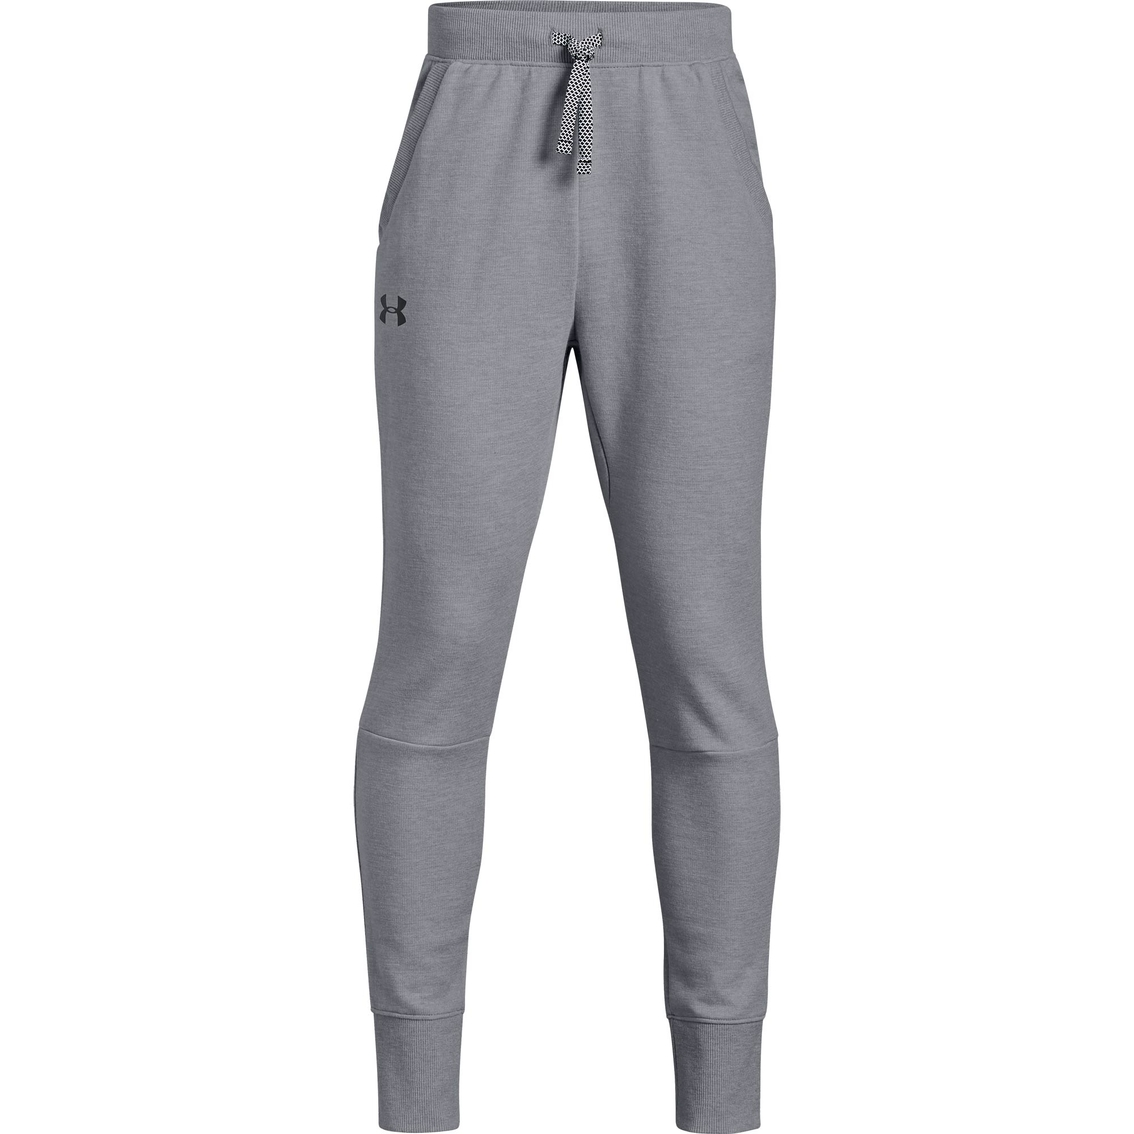 9263583645847c Under Armour Boys Unstoppable Double Knit Joggers | Boys 8-20 ...